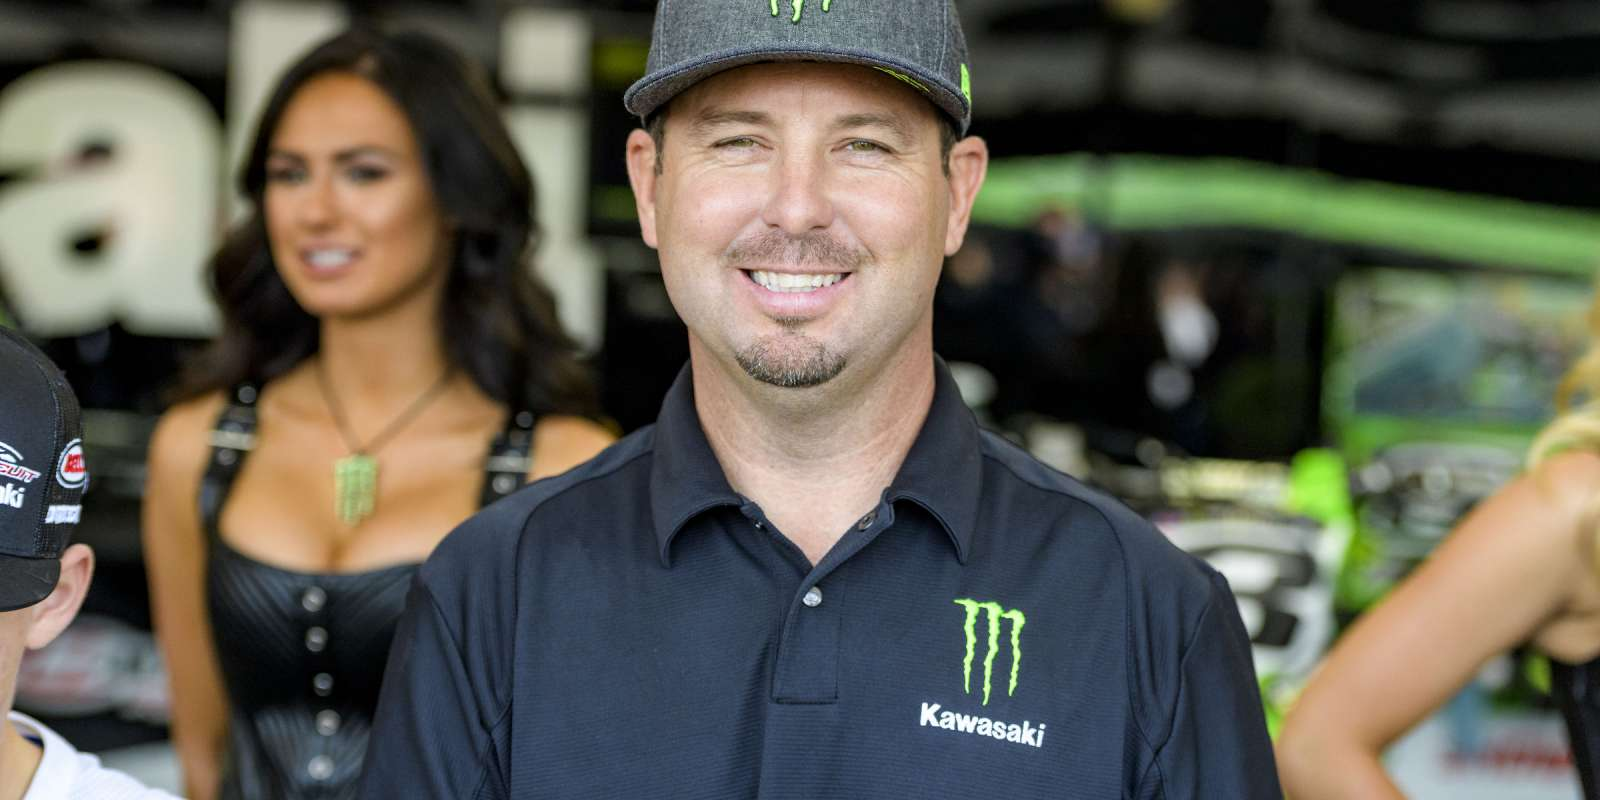 Jeremy McGrath at the first stop of the 2017 Supercross season in Anaheim, California